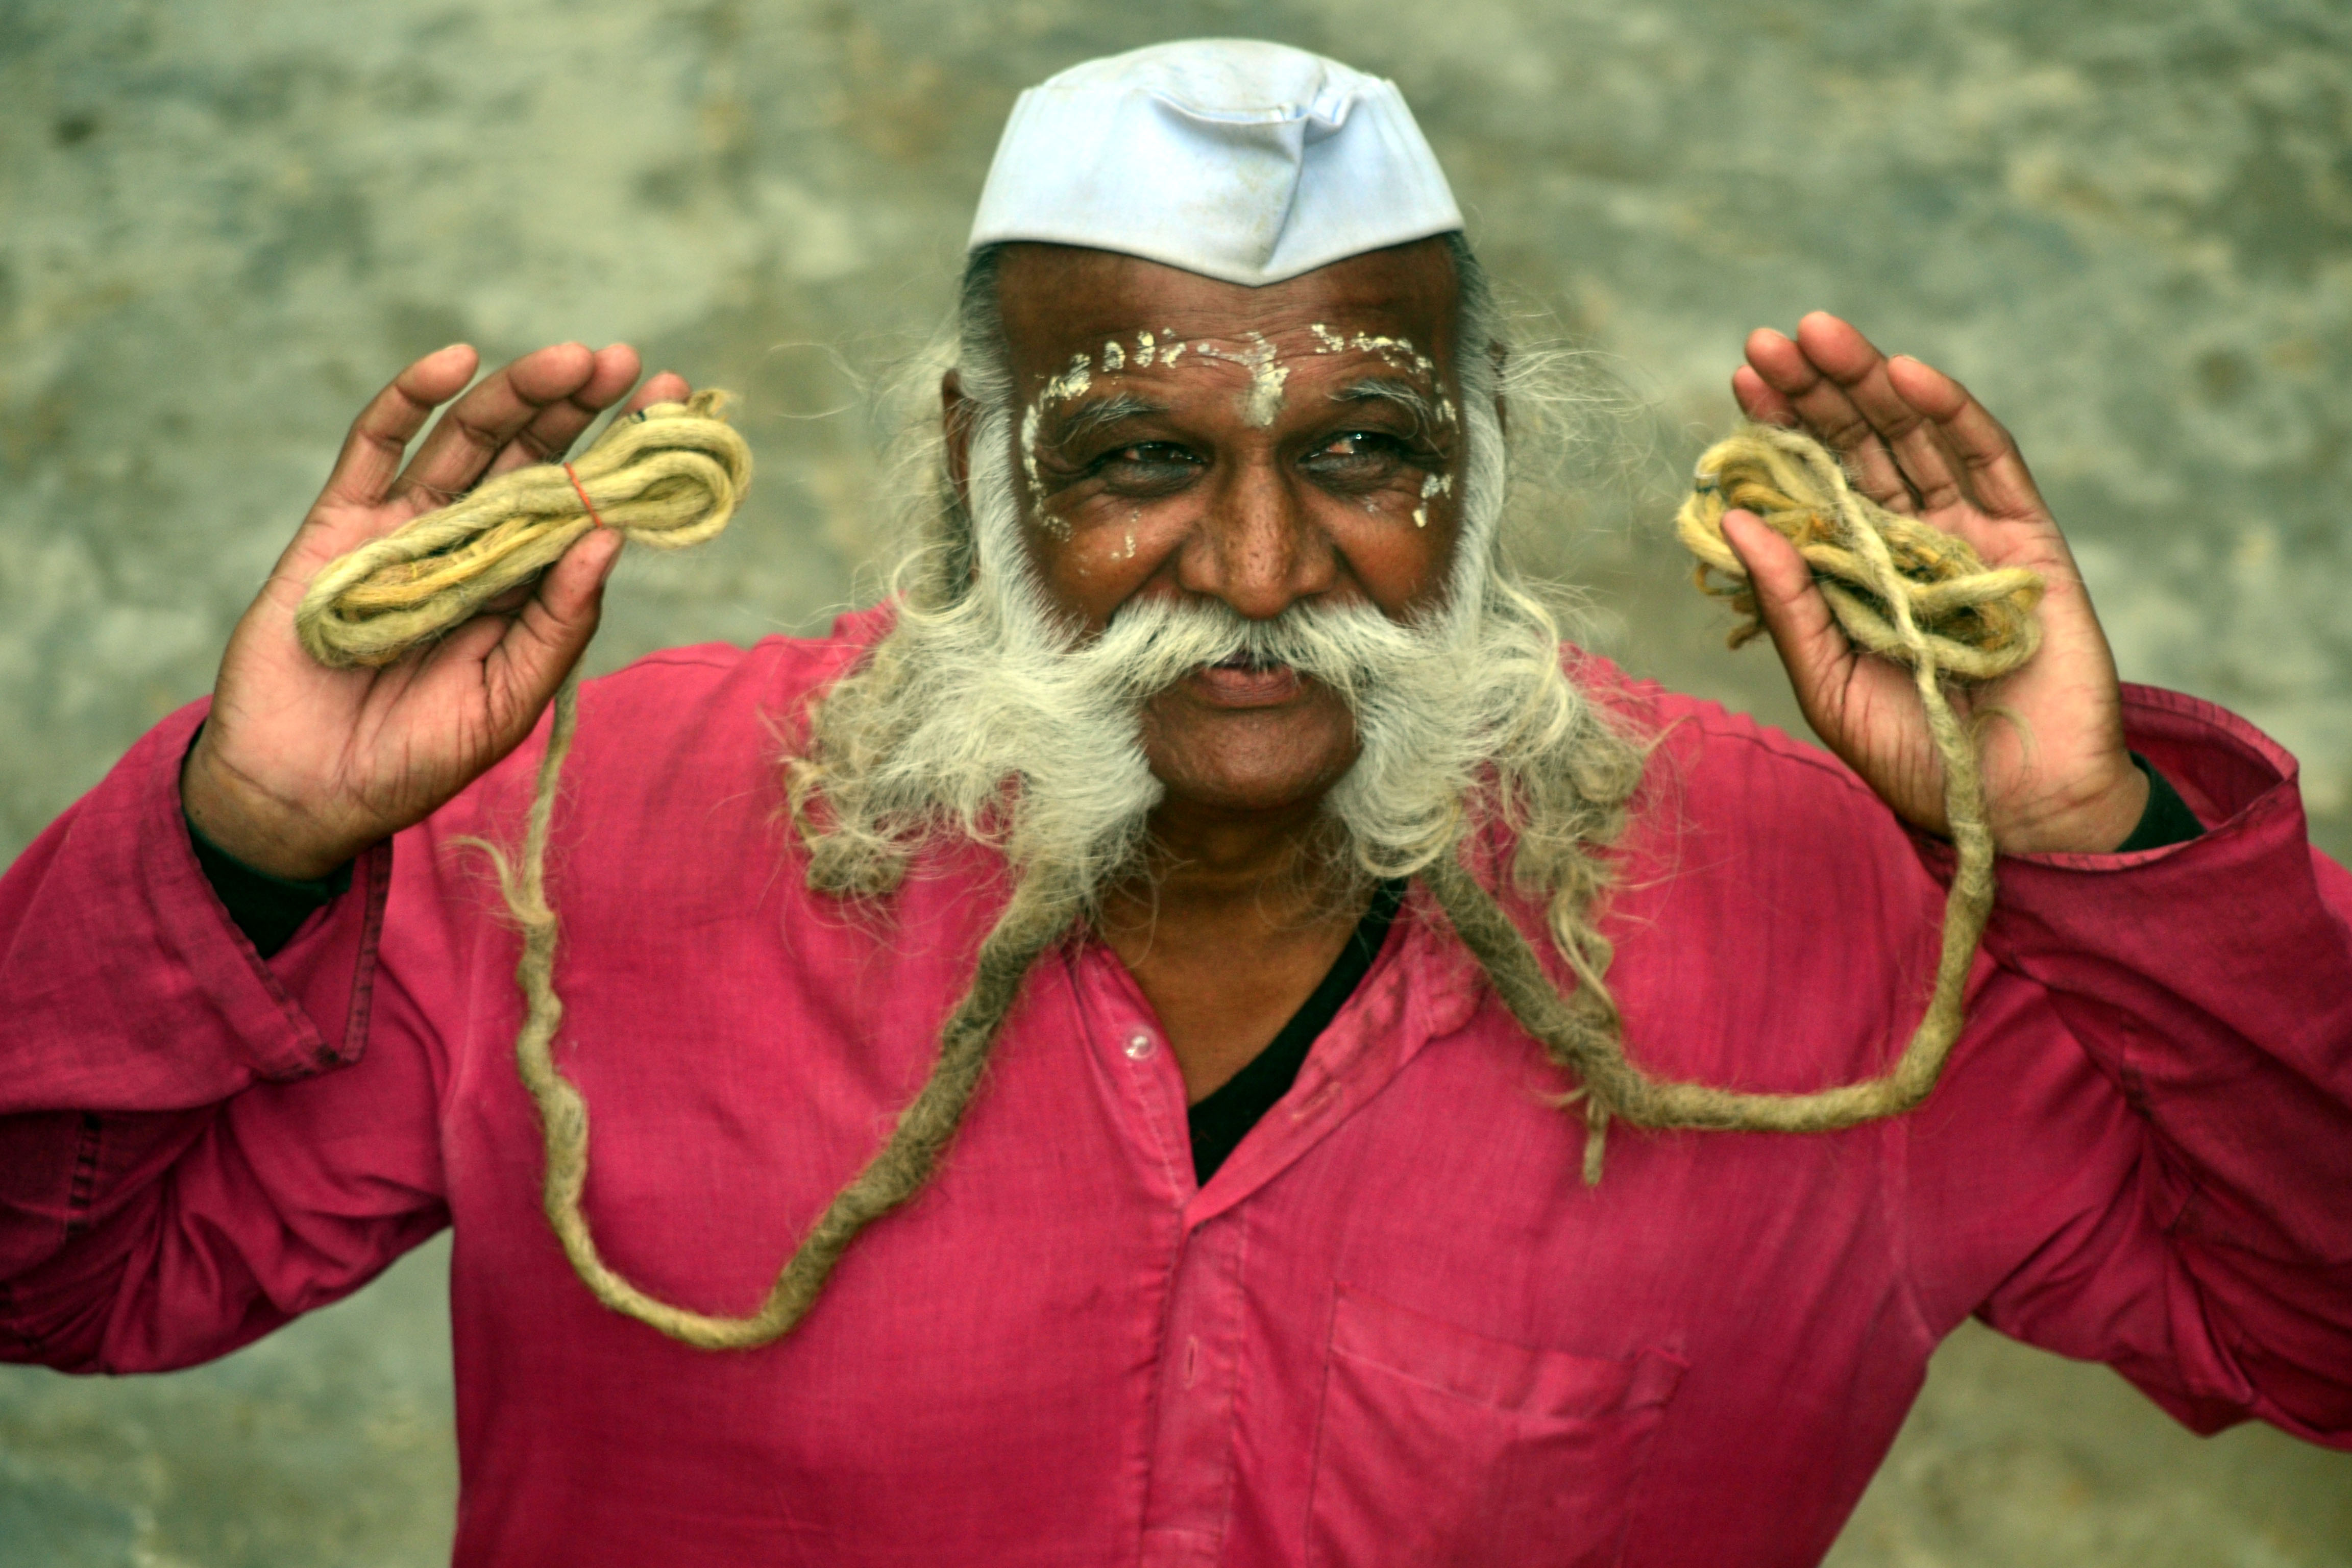 Seventy-year-old Indian man with a 18-foot-long mustache